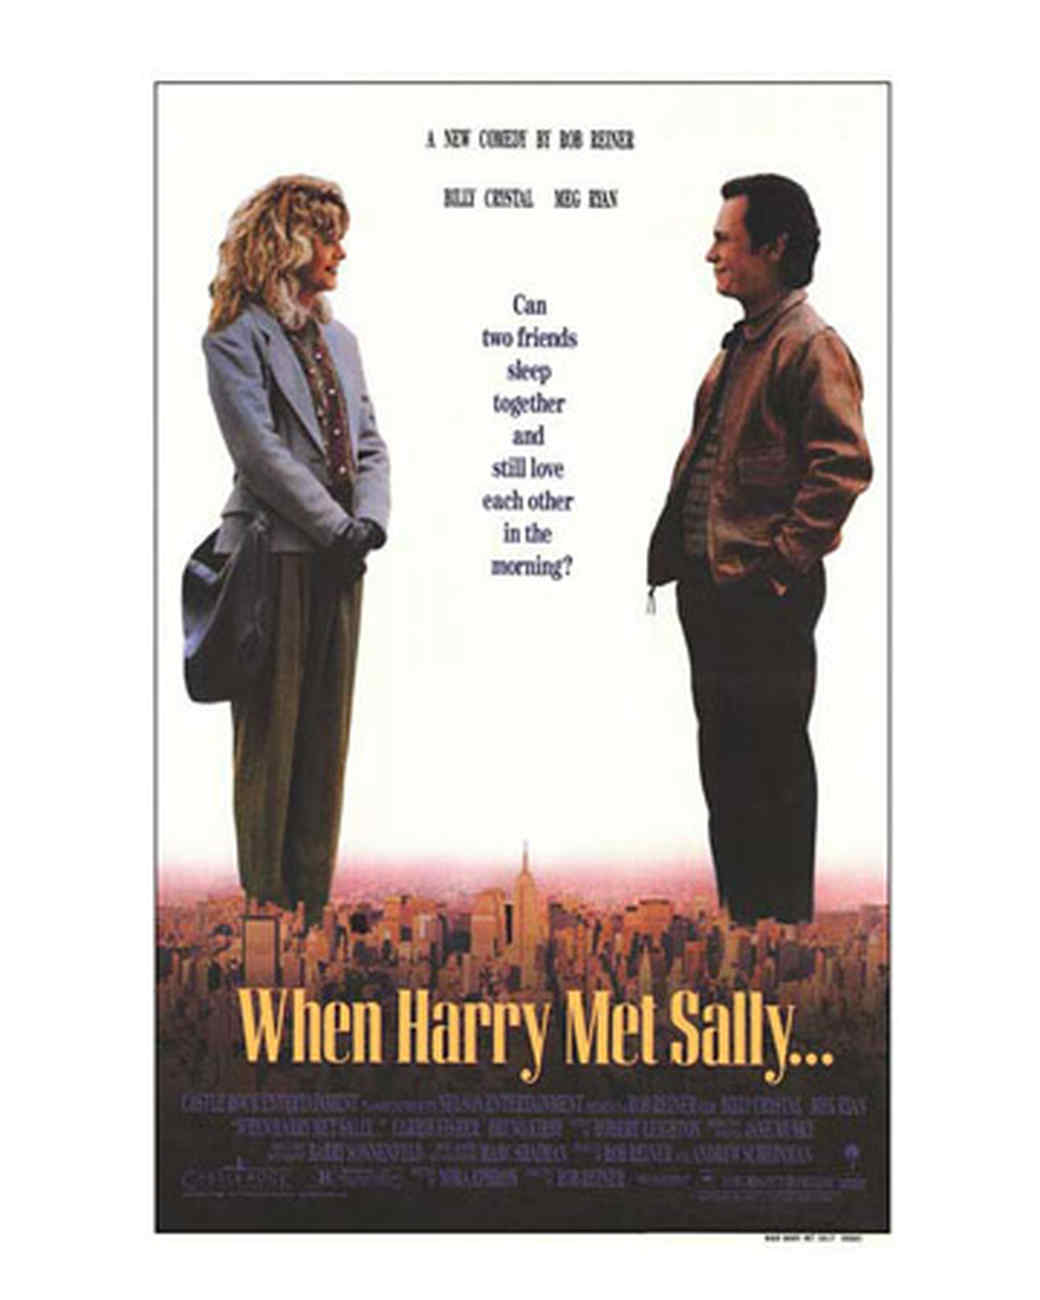 stock_movie_stills_when_harry_met_sally_poster.jpg